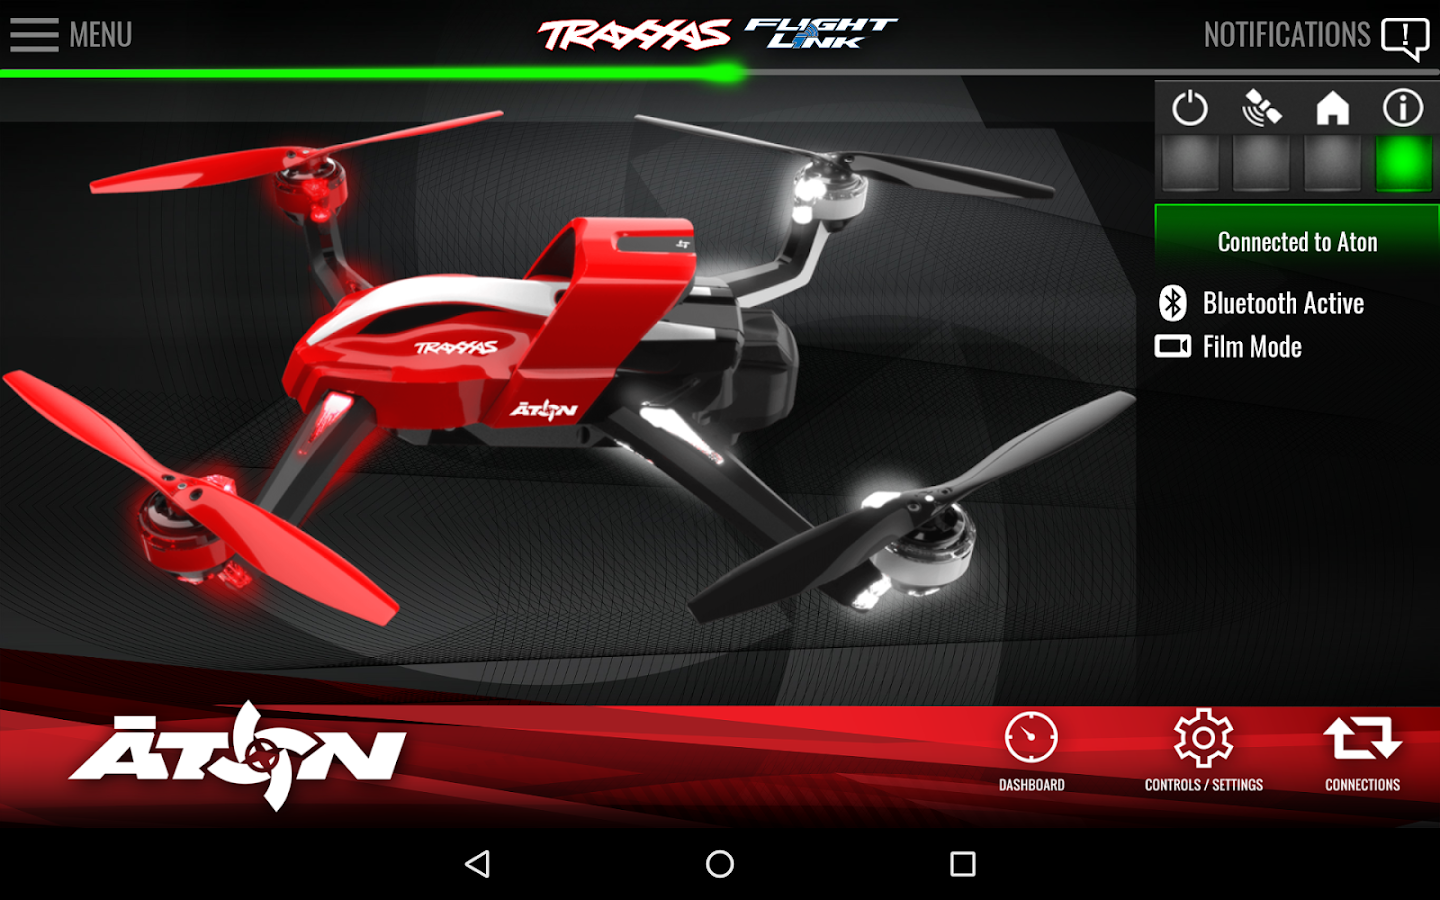 Traxxas Flight Link – скриншот